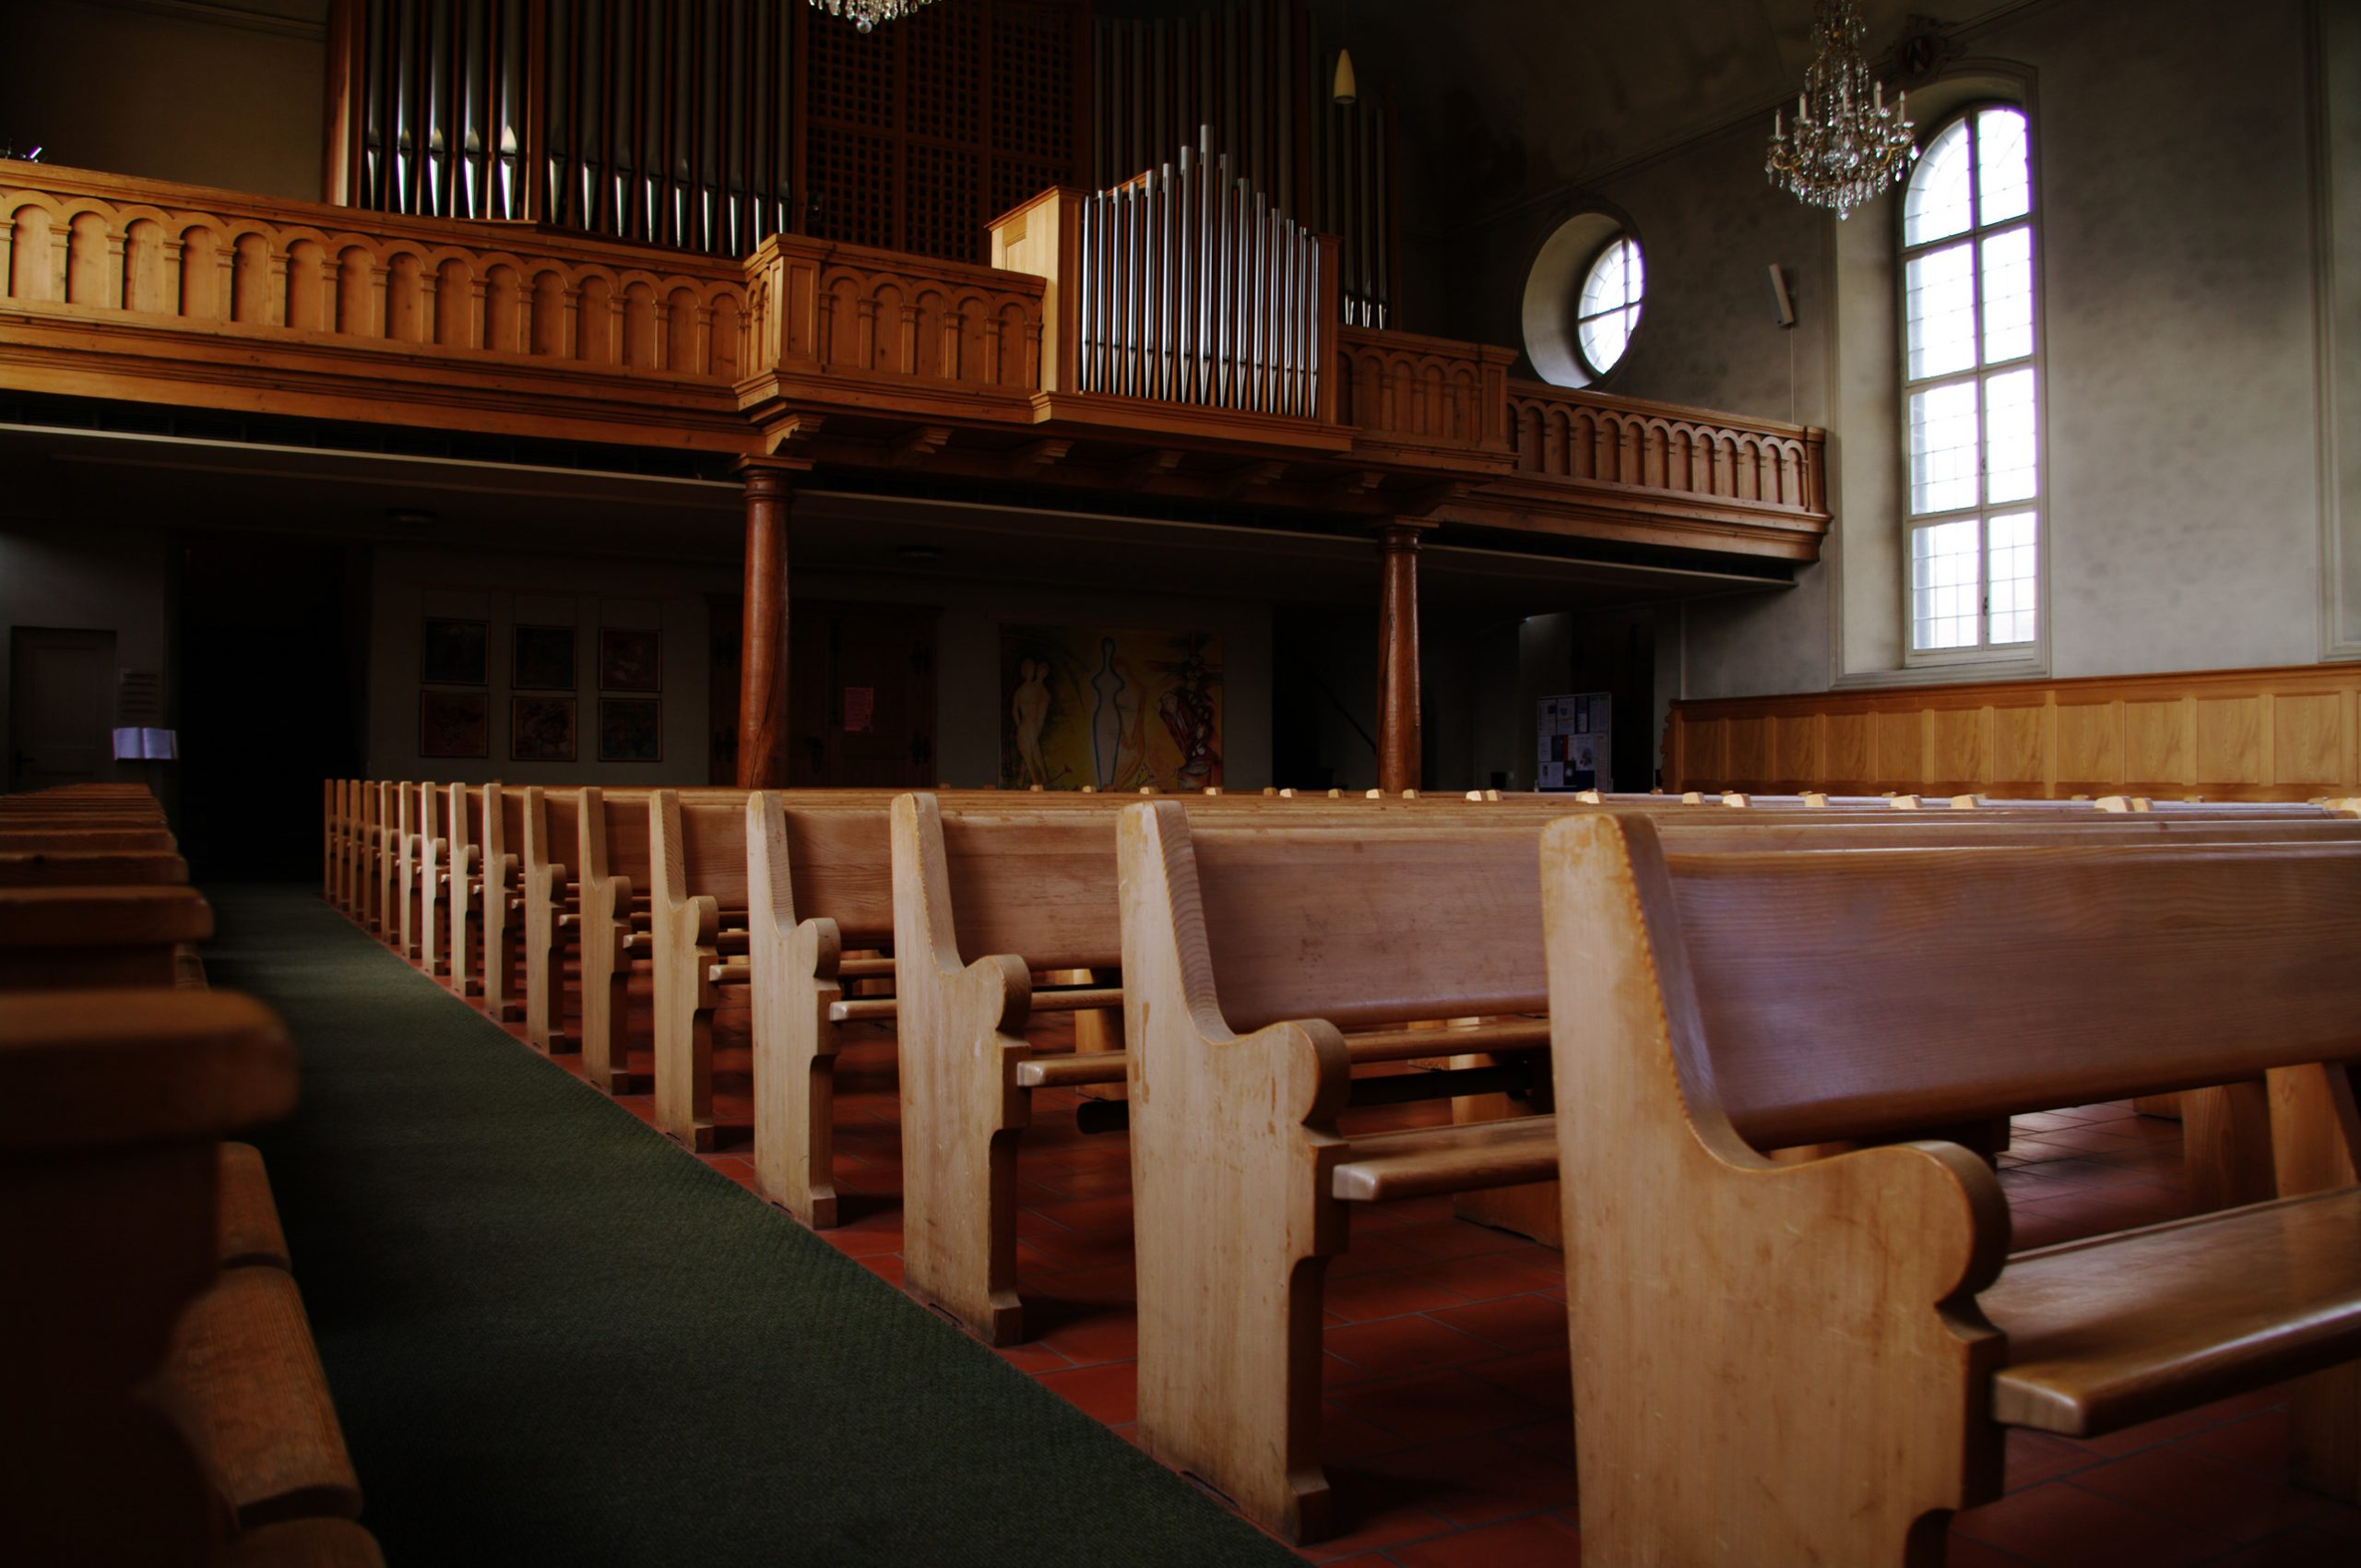 Finding a New Church